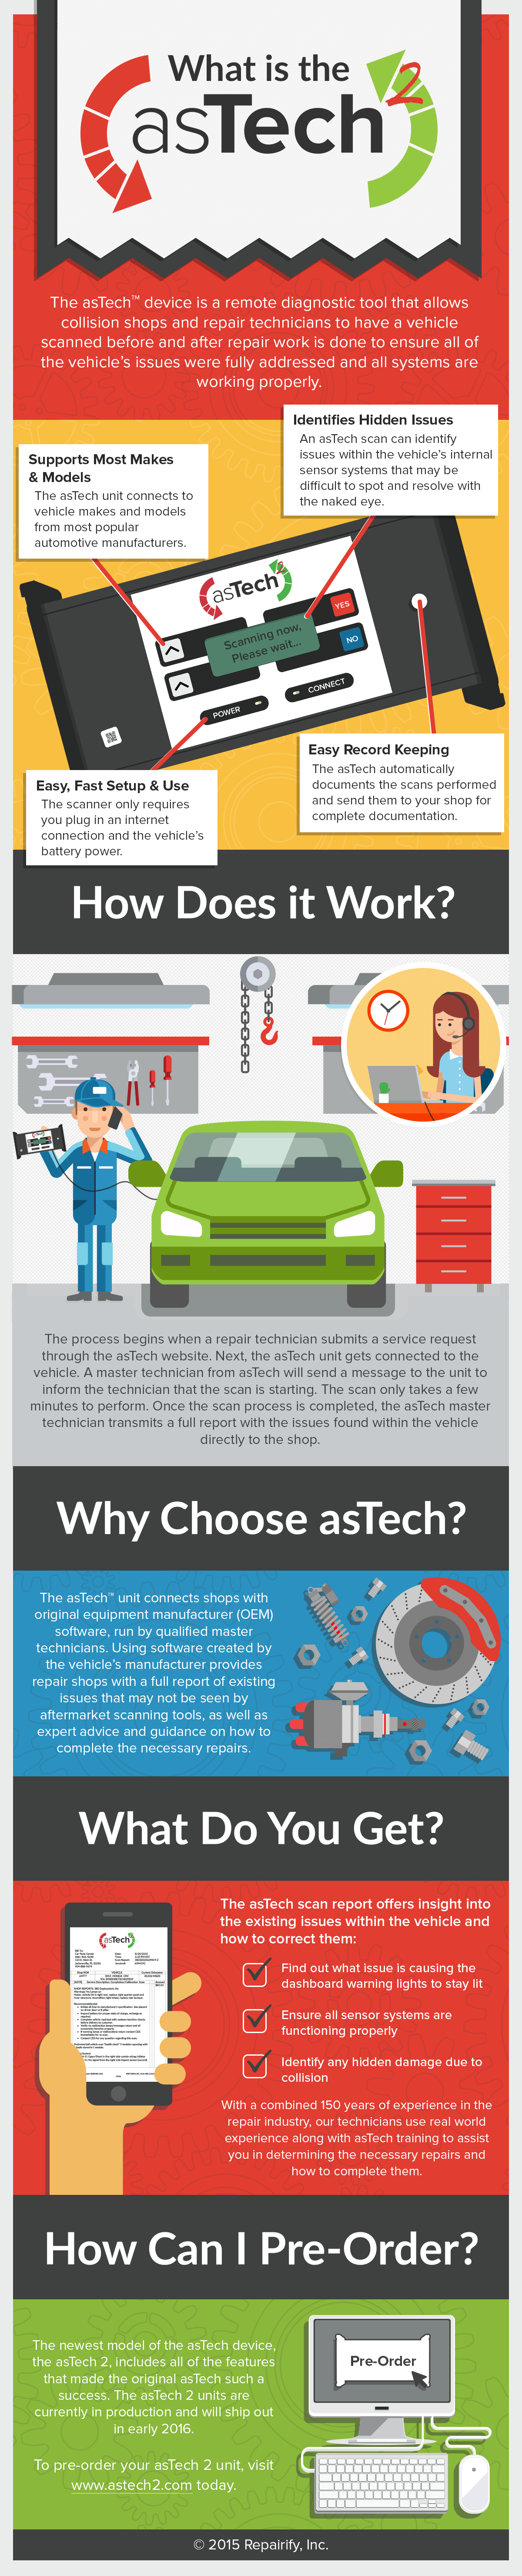 What Is the asTech 2?